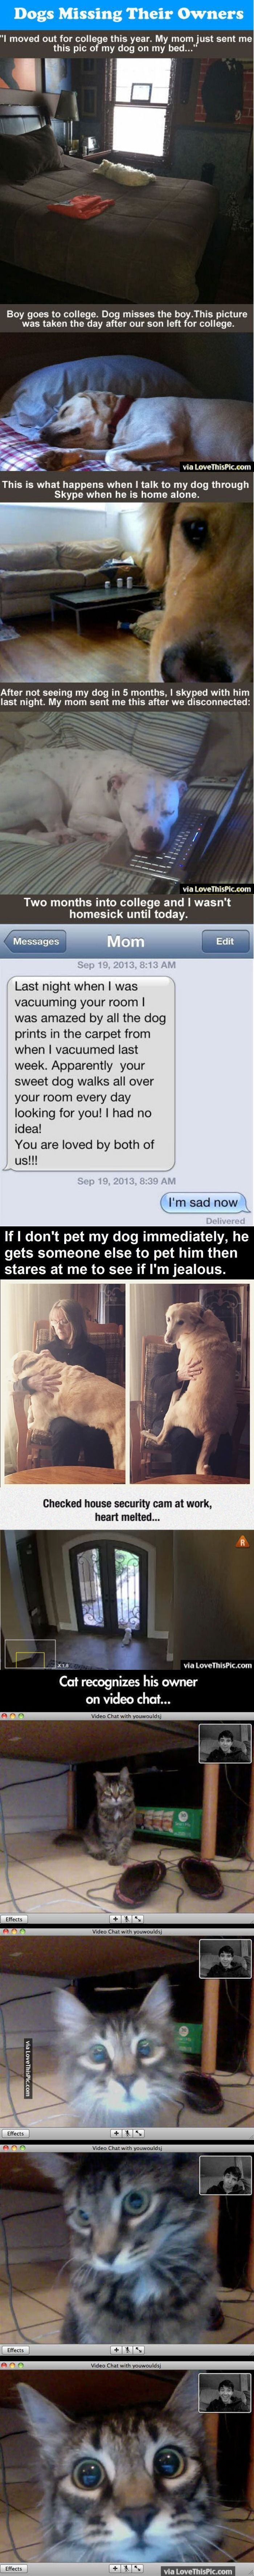 Dogs Missing Their Owners